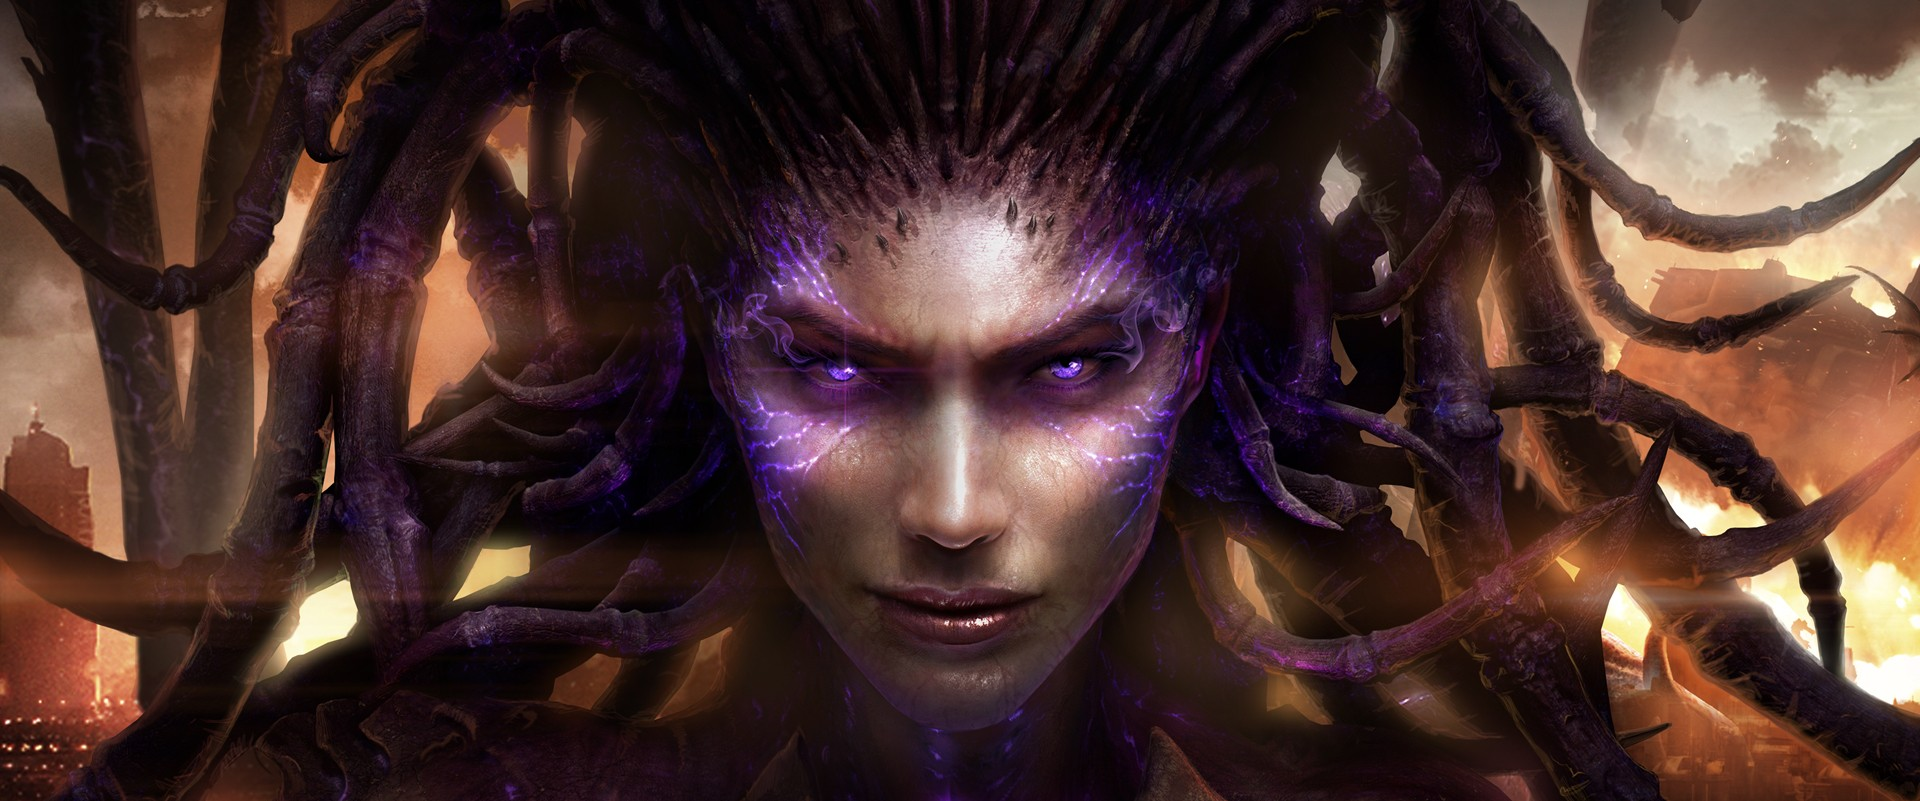 starcraft-2-heart-of-the-swarm_wide